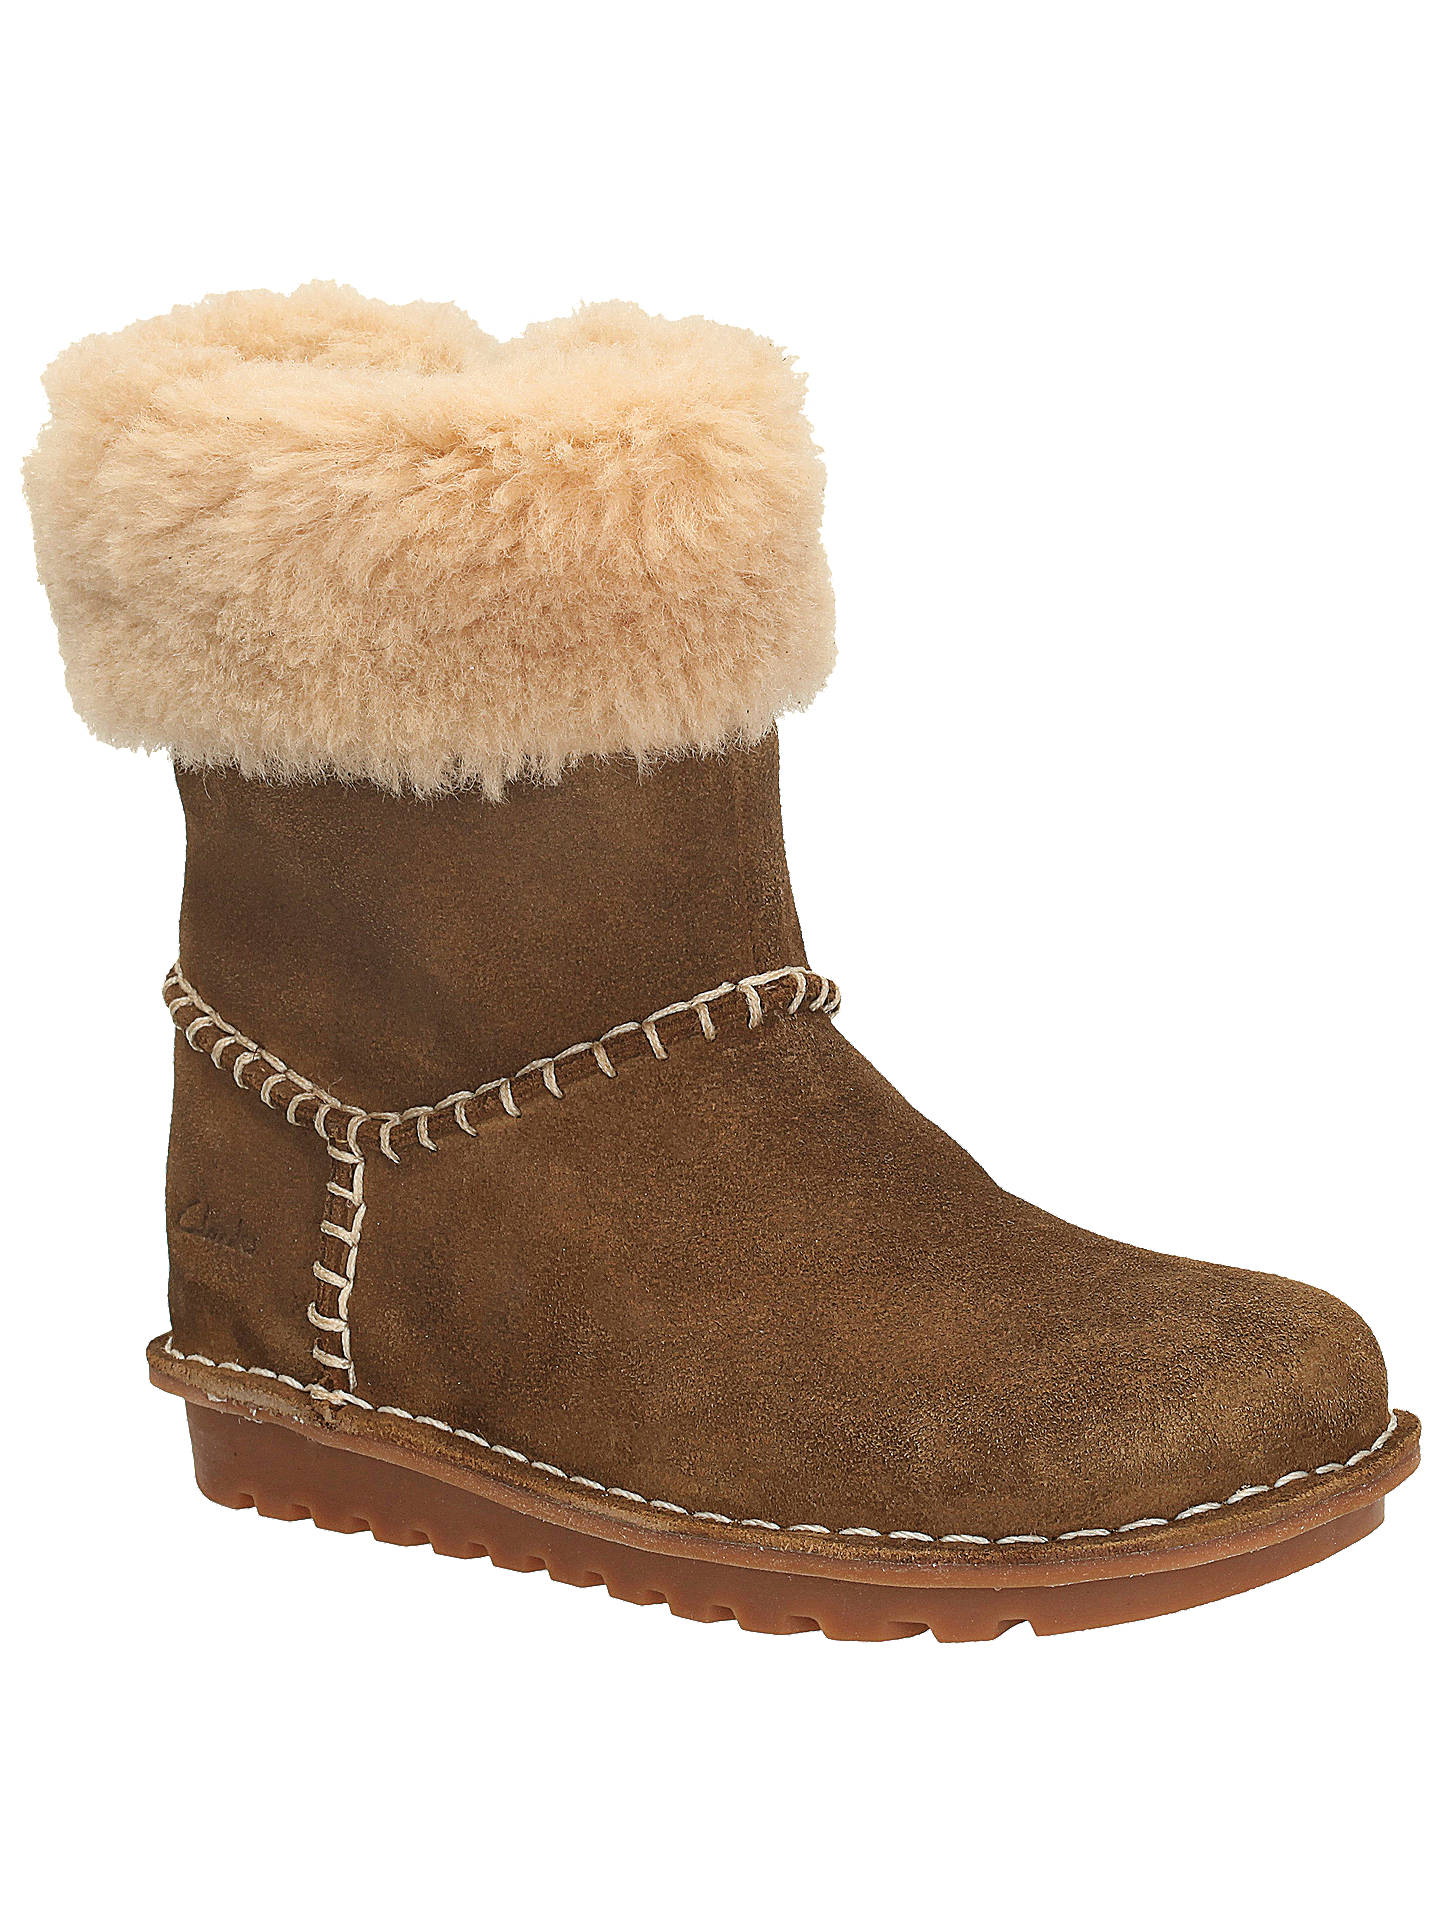 a16fe12be Buy Clarks Children s Greeta Ace Suede Boots